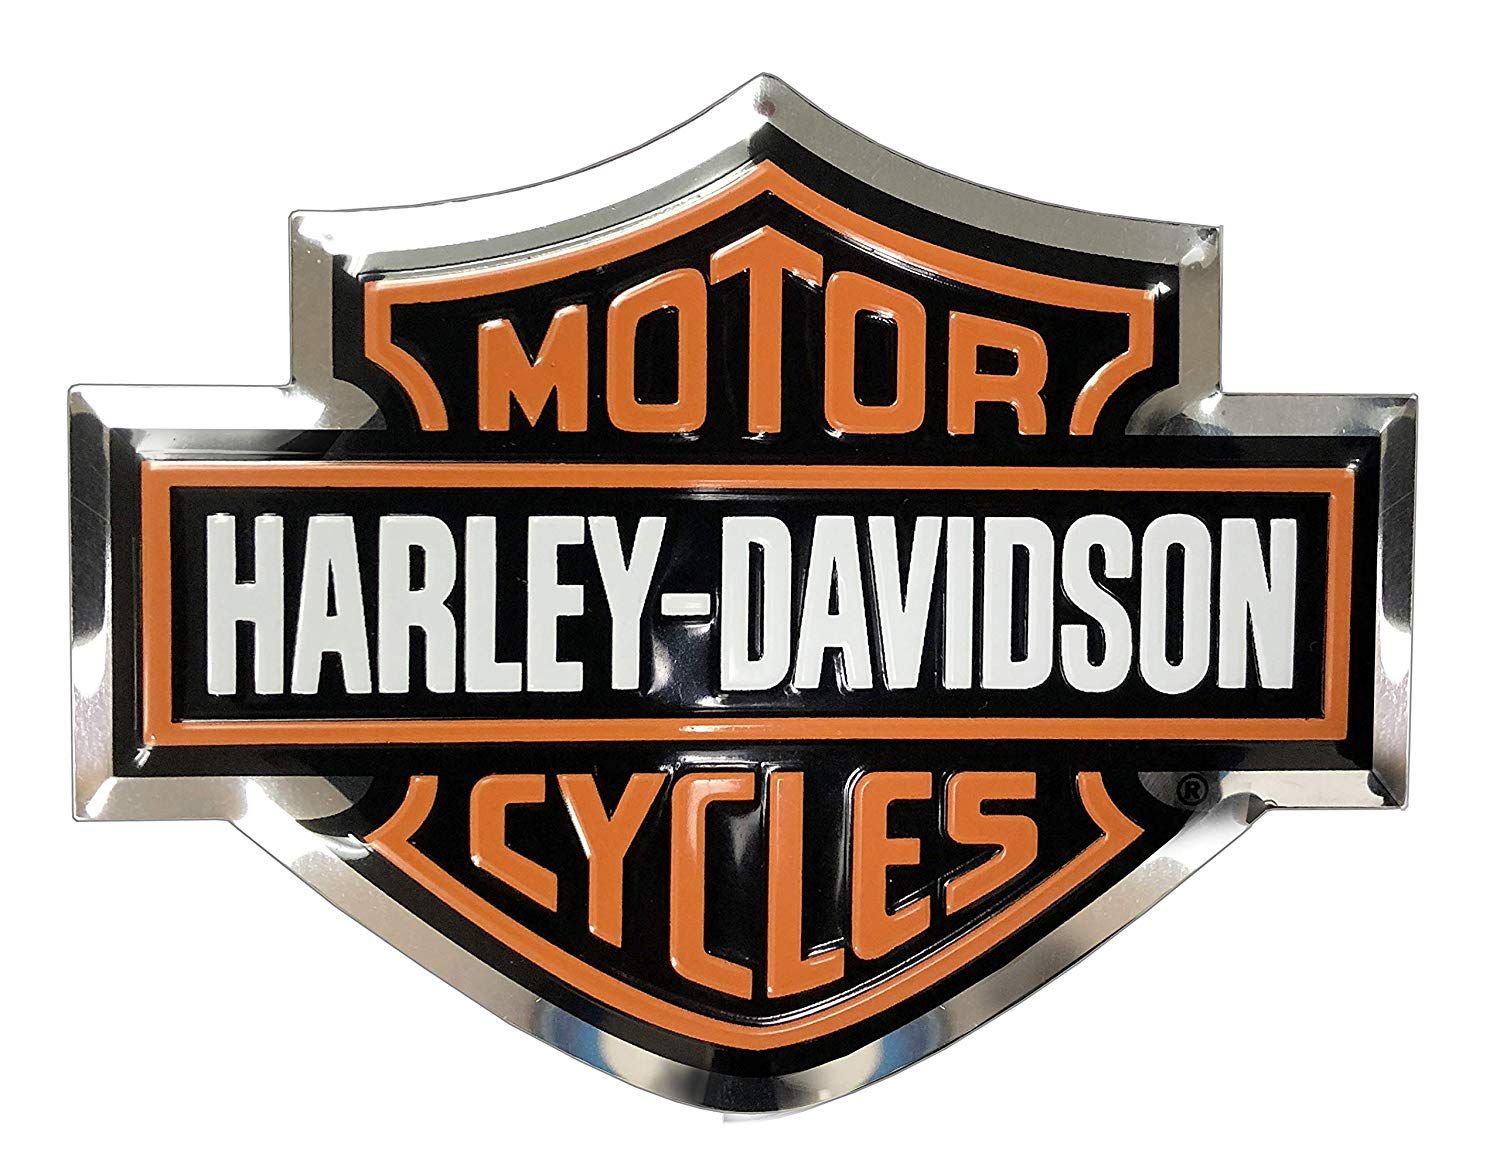 Harley Davidson Bar - Shield Aluminum Decal